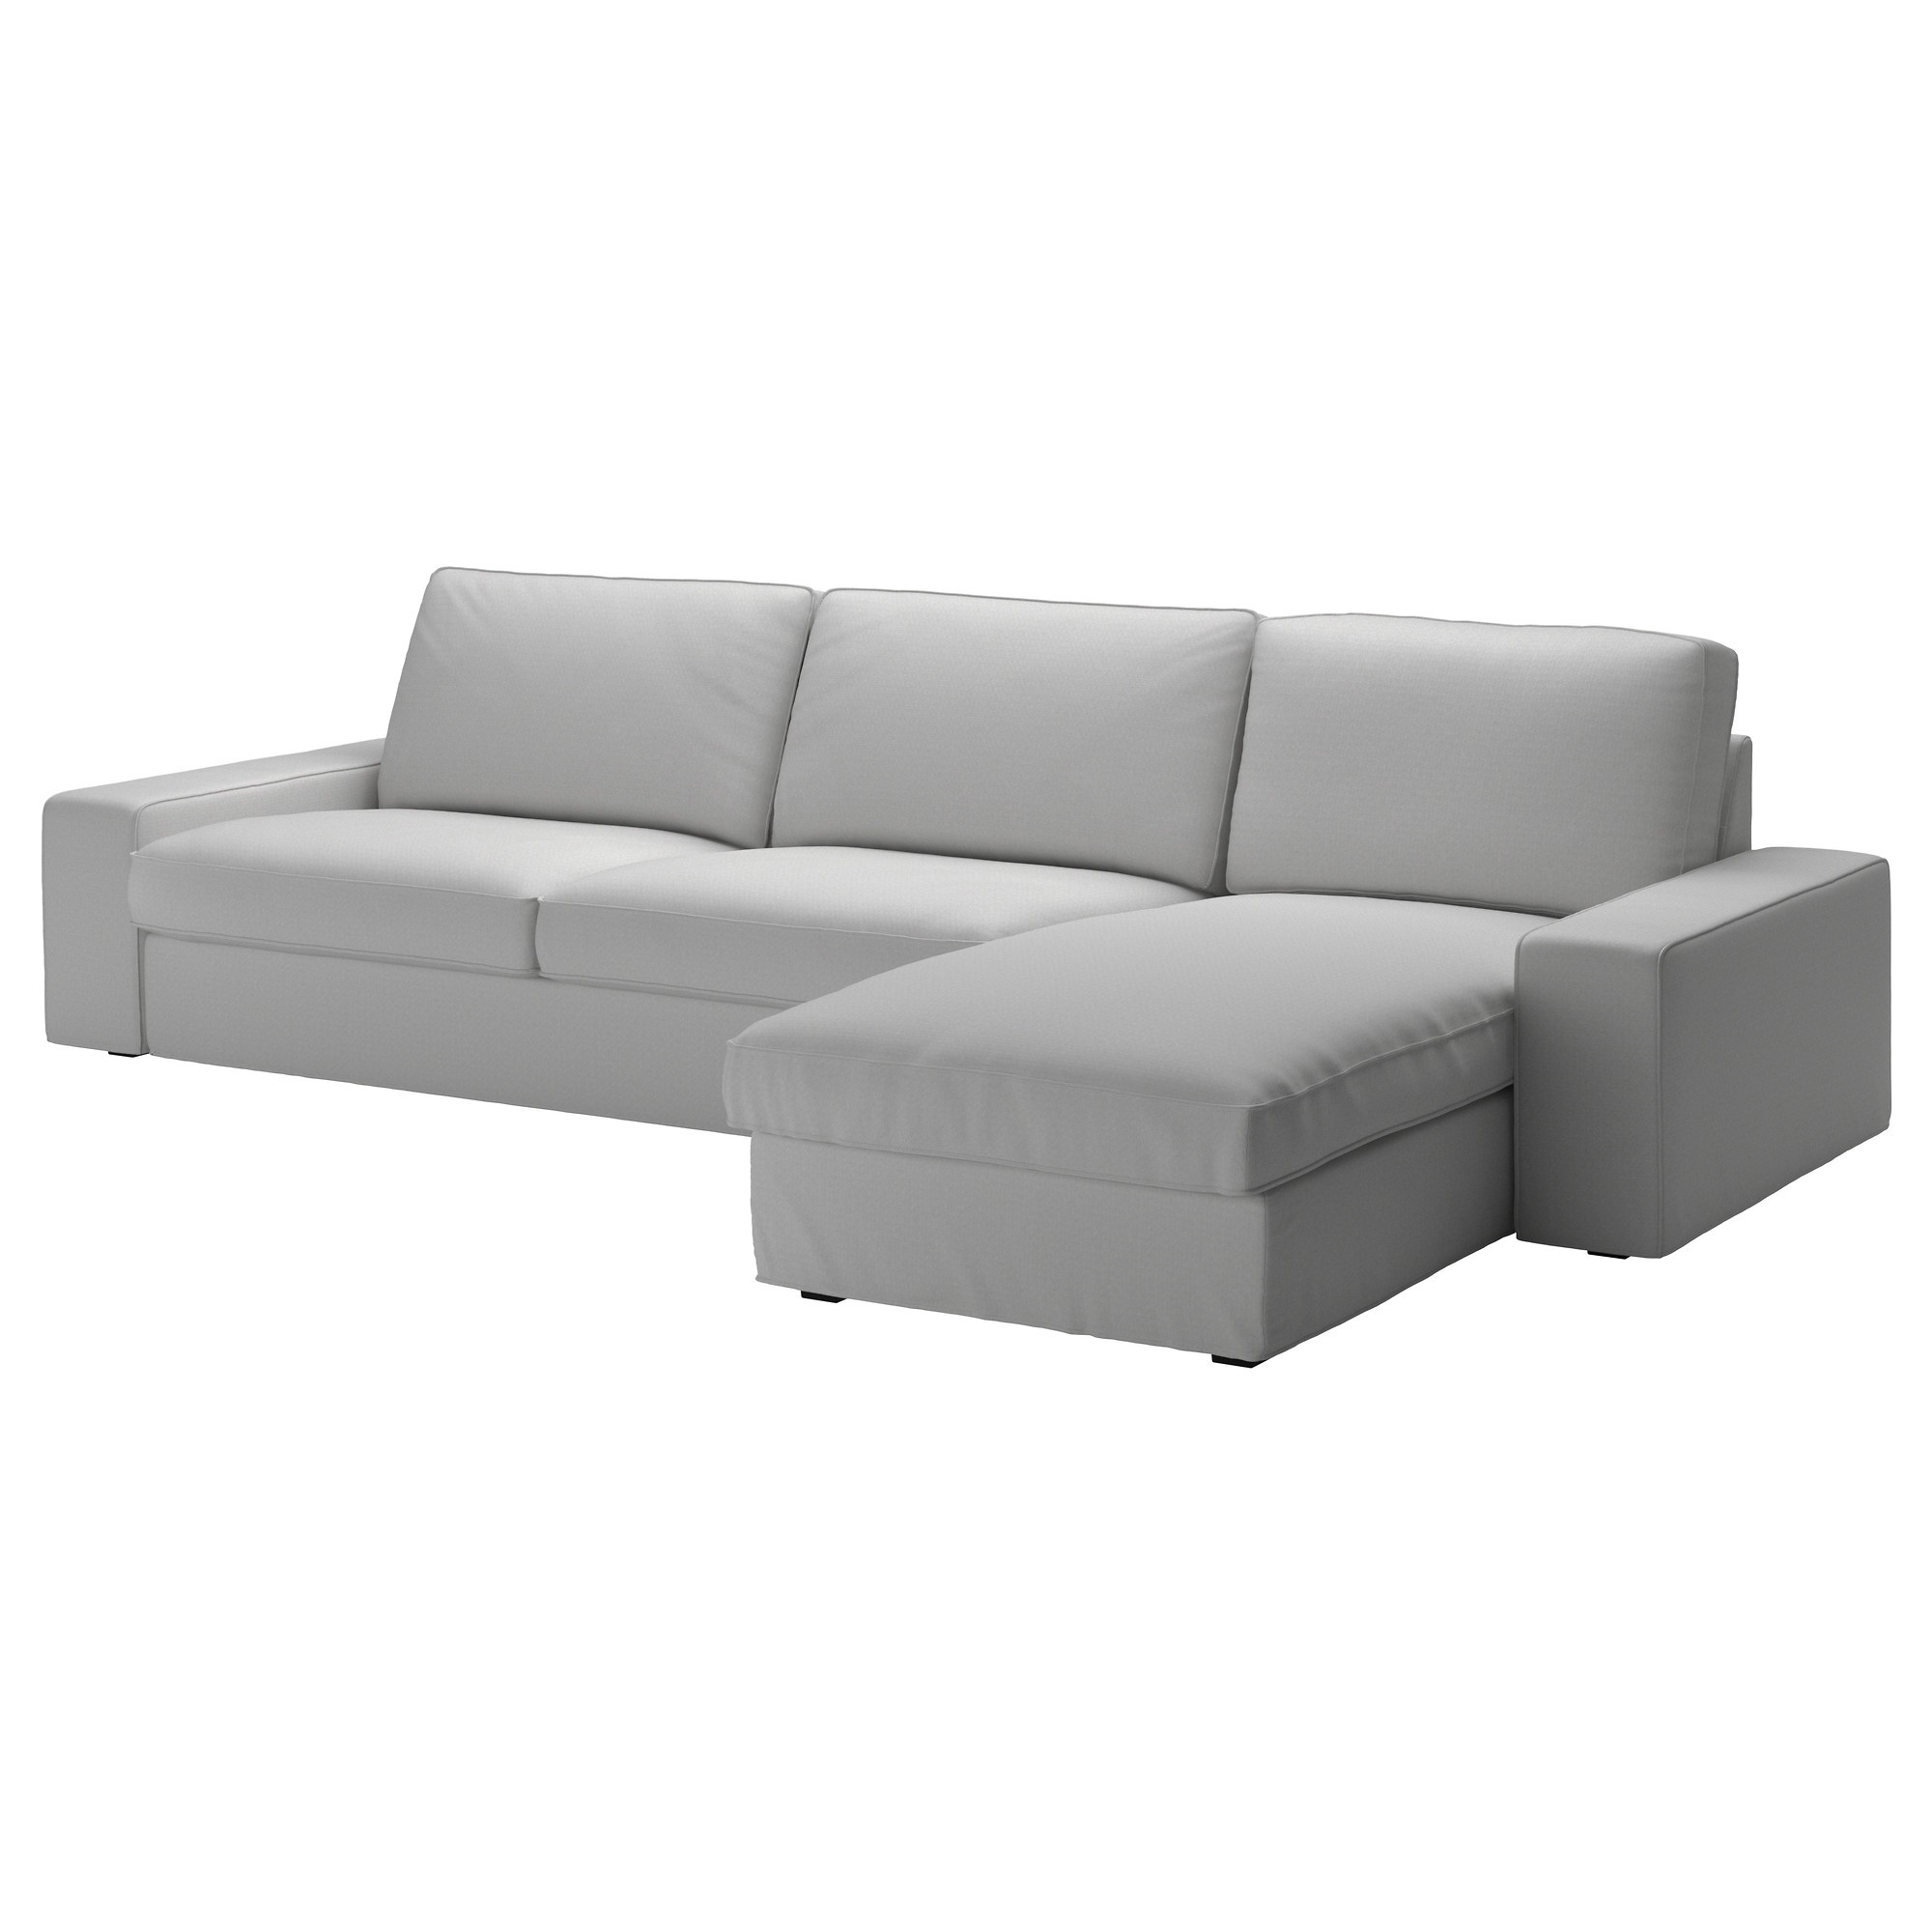 Kivik sofa Ikea Terrific Kivik Sectional 4 Seat orrsta Light Gray Ikea Ideas